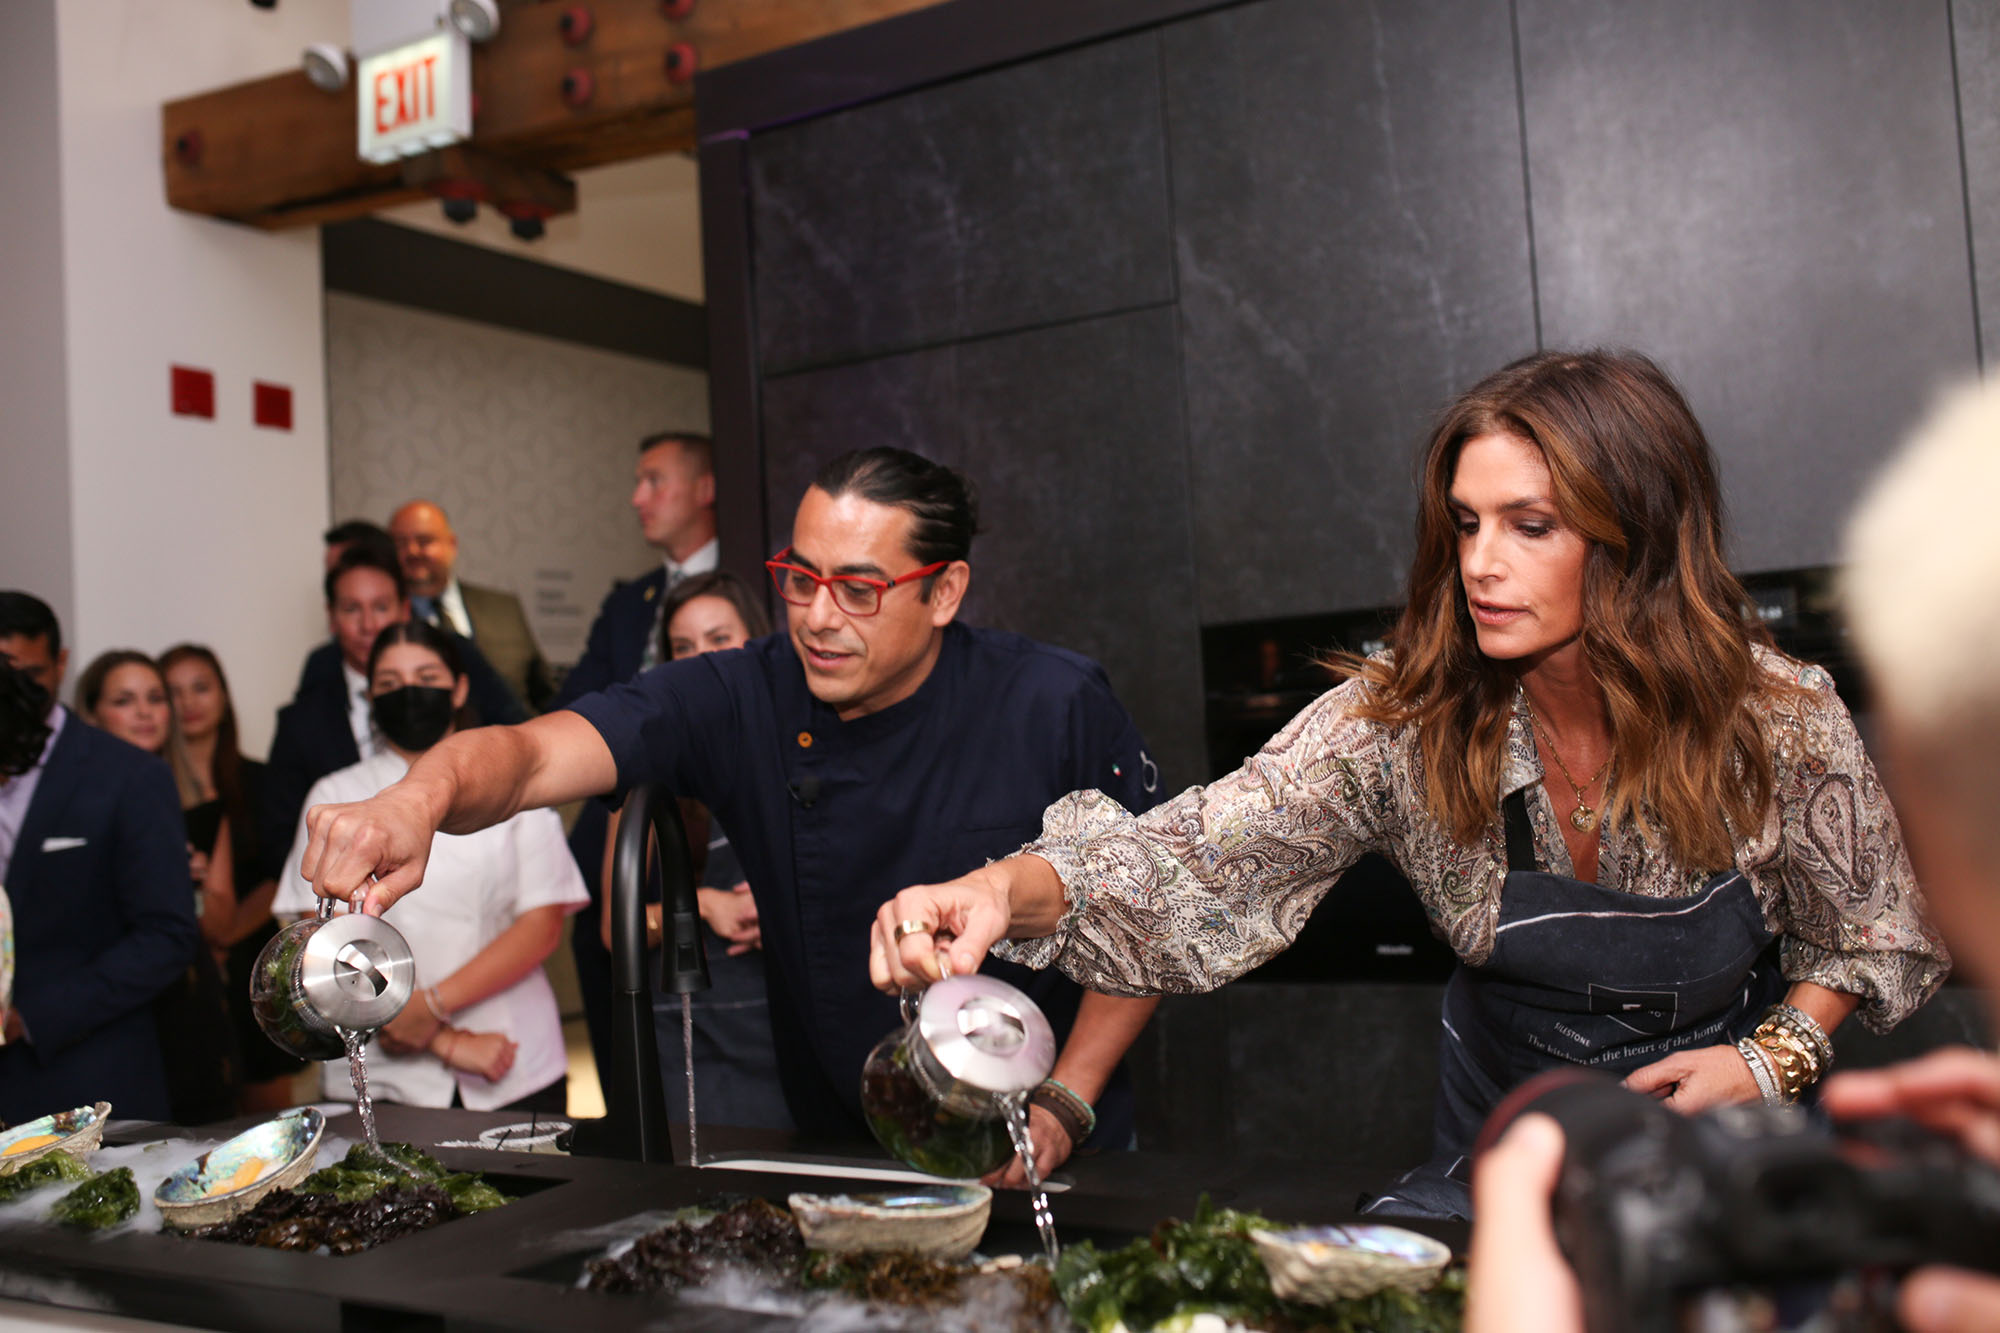 Image of Cosentino City Chicago Carlos Gaytán Cindy Crawford press in Cosentino celebrates Chicago City Center Grand Opening with fashion icon Cindy Crawford - Cosentino